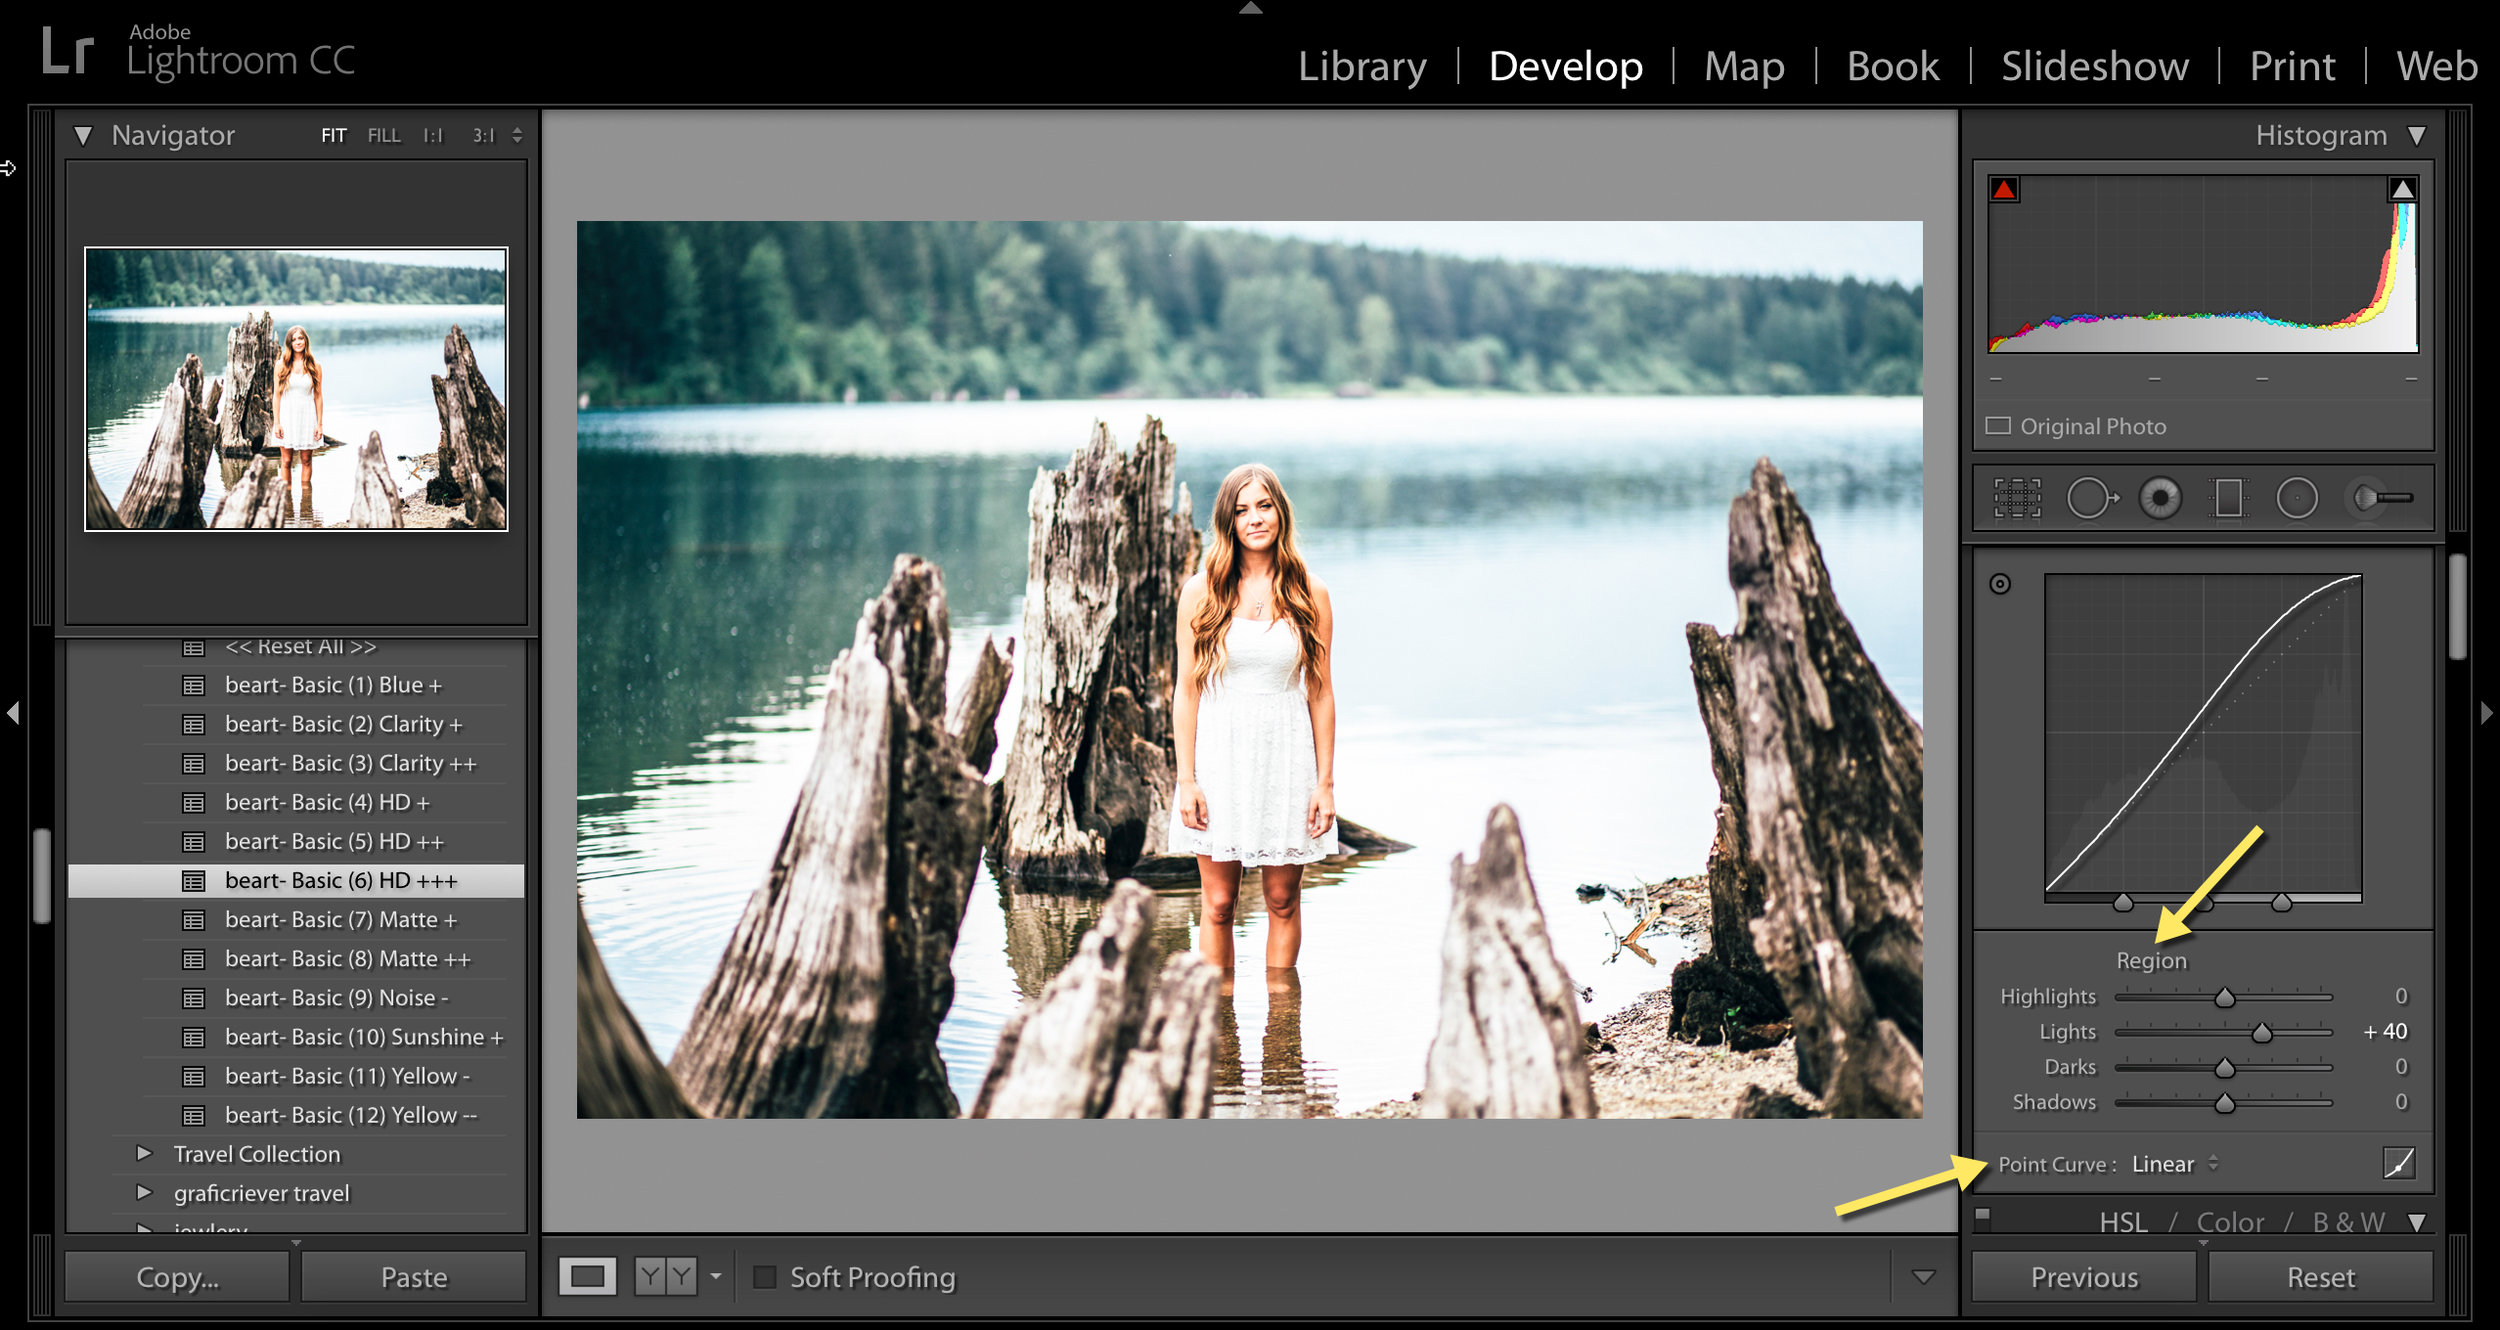 point curve and region in lightroom